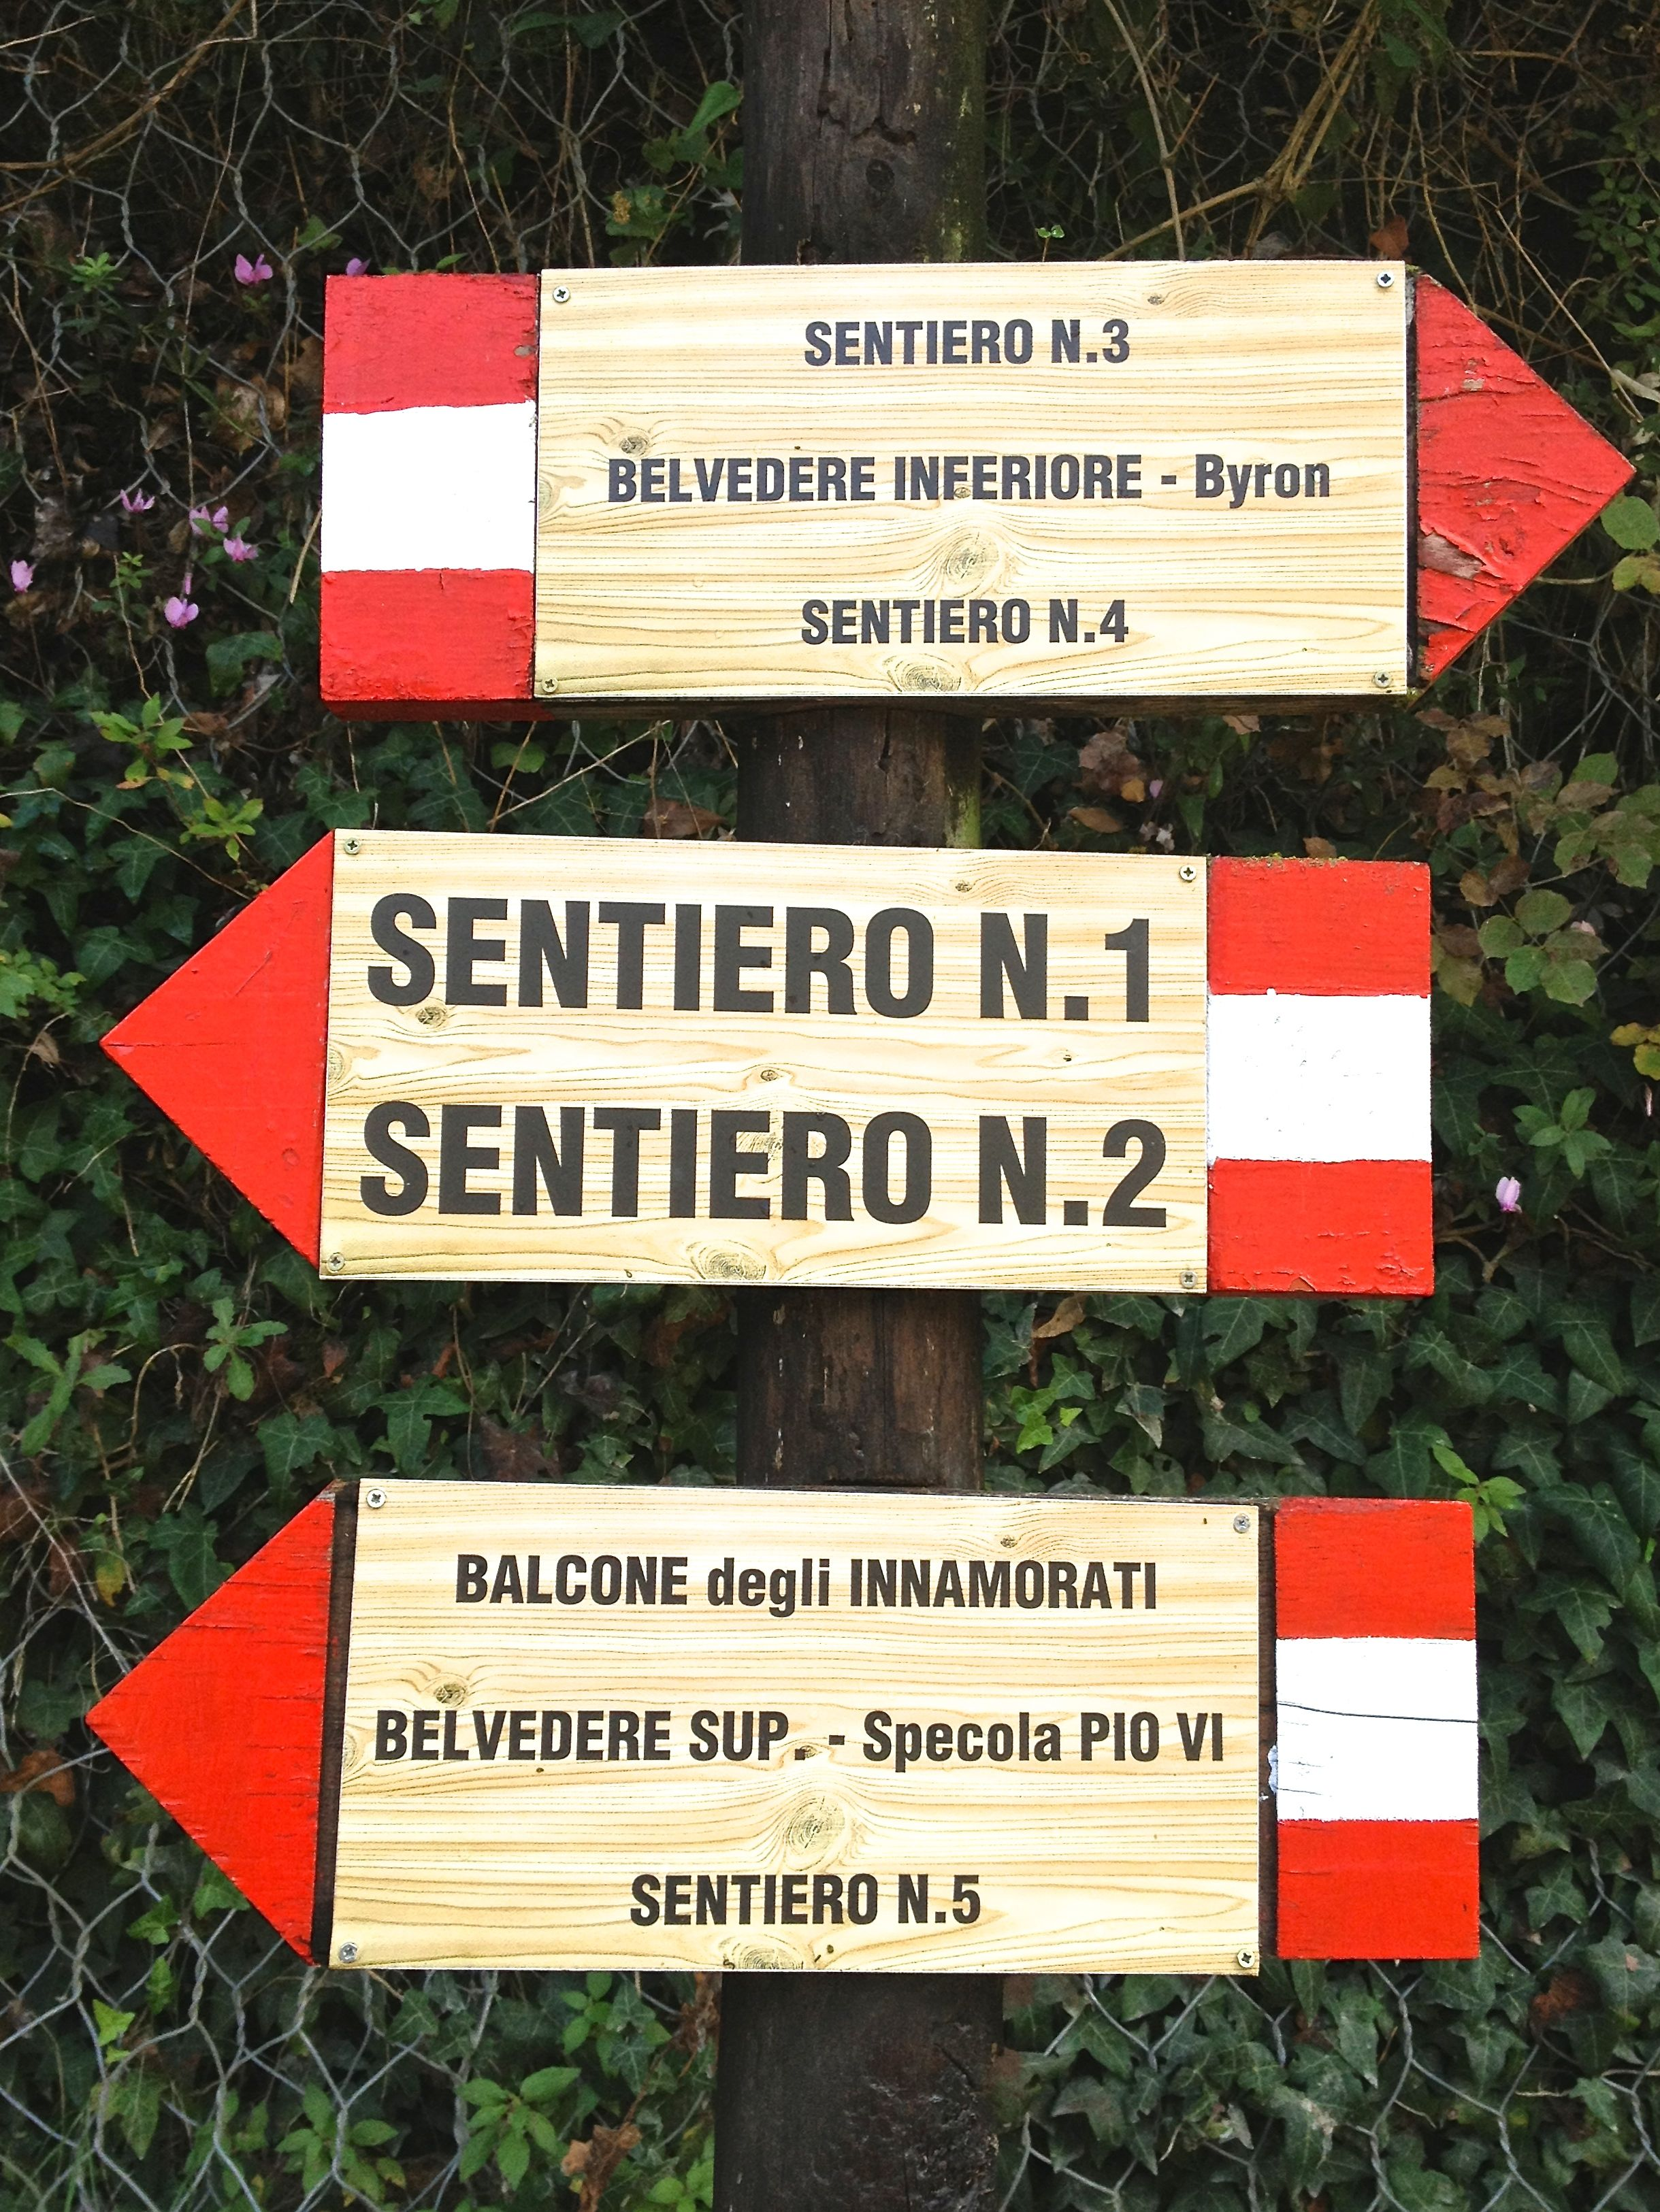 Signposts clearly mark the way around the Cascata delle Marmore